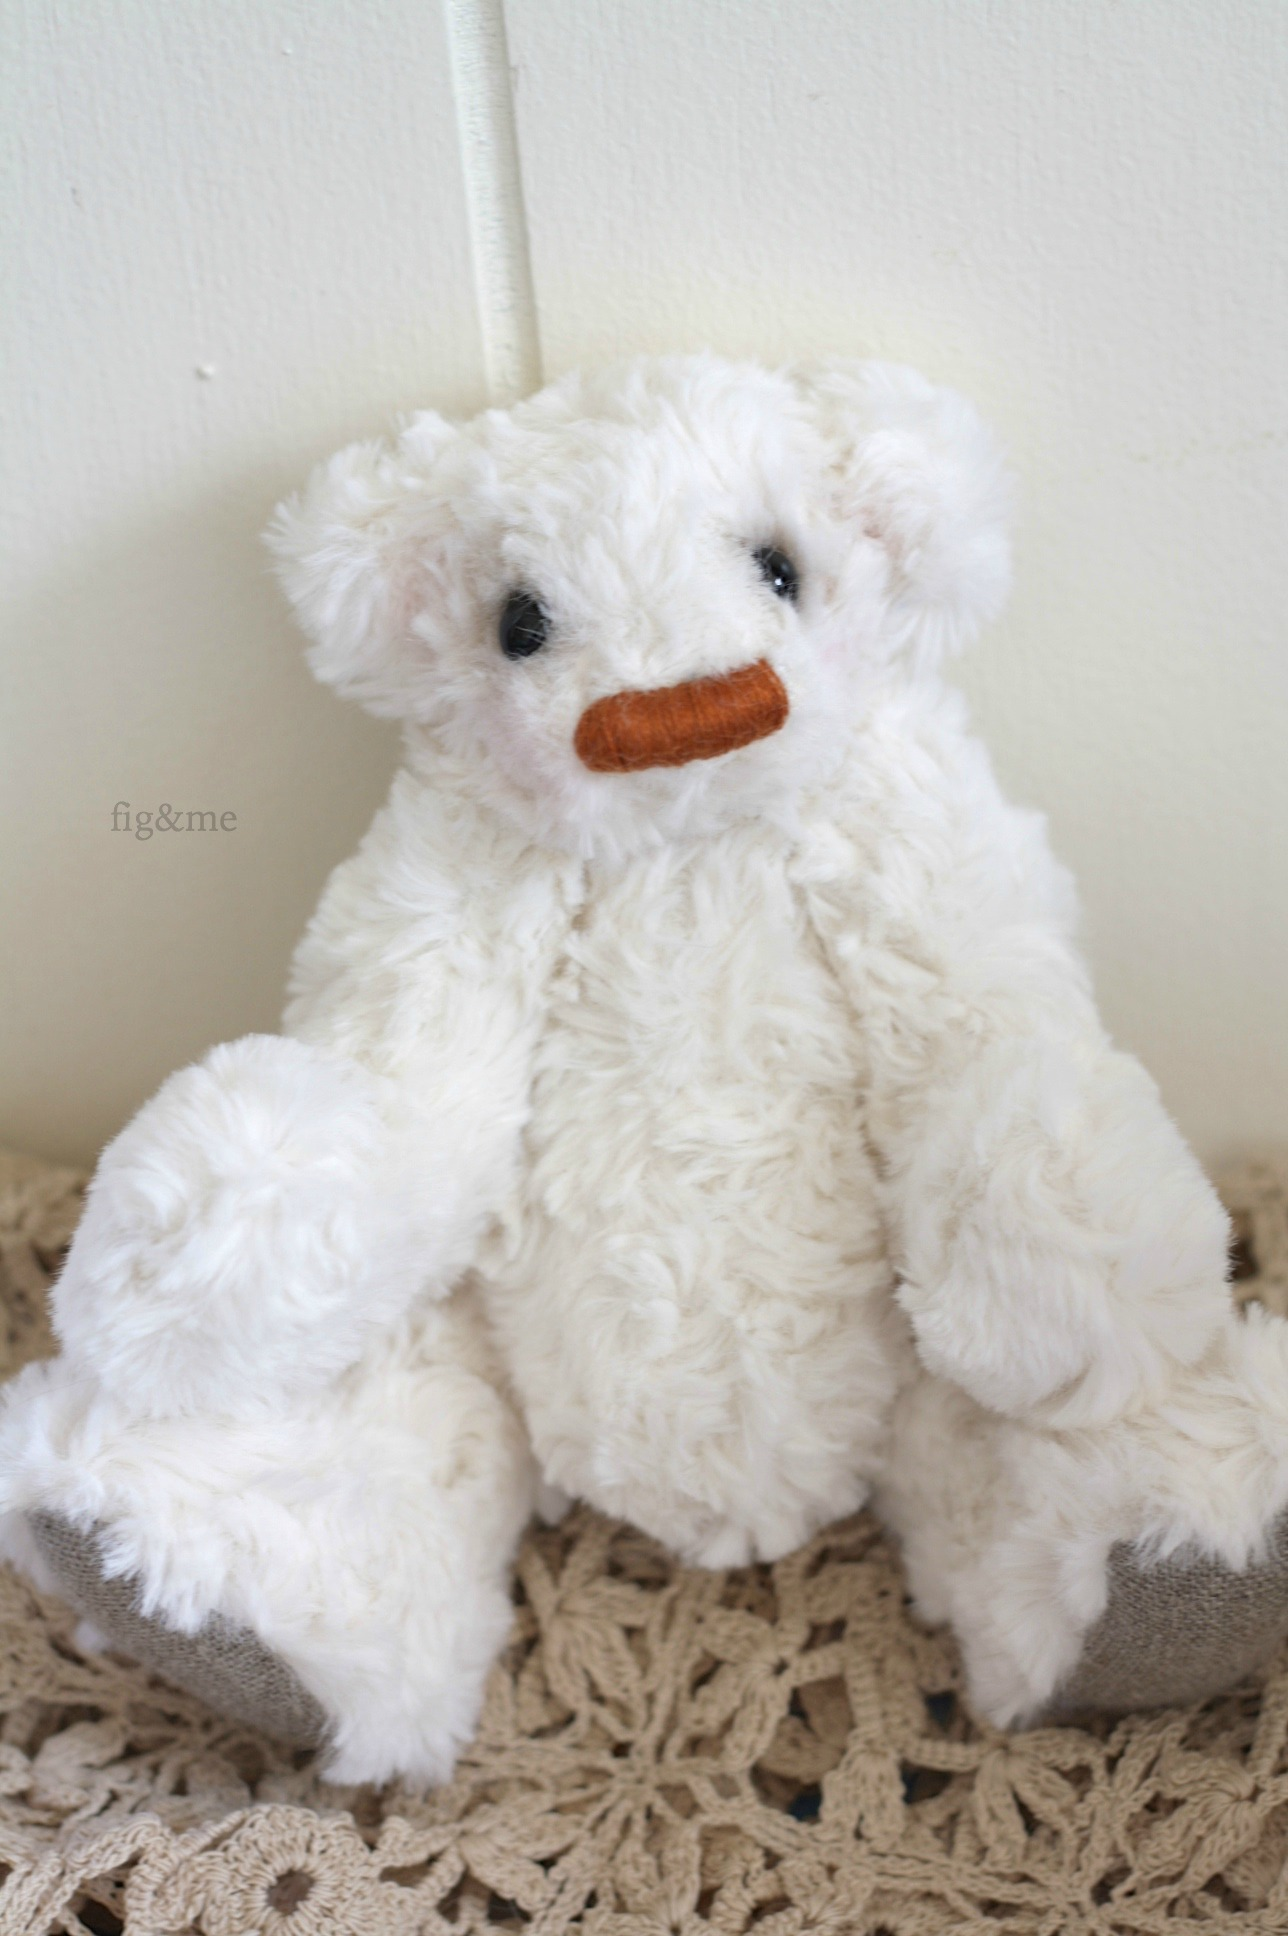 Little Tip, a jointed teddy bear by Fig and Me.